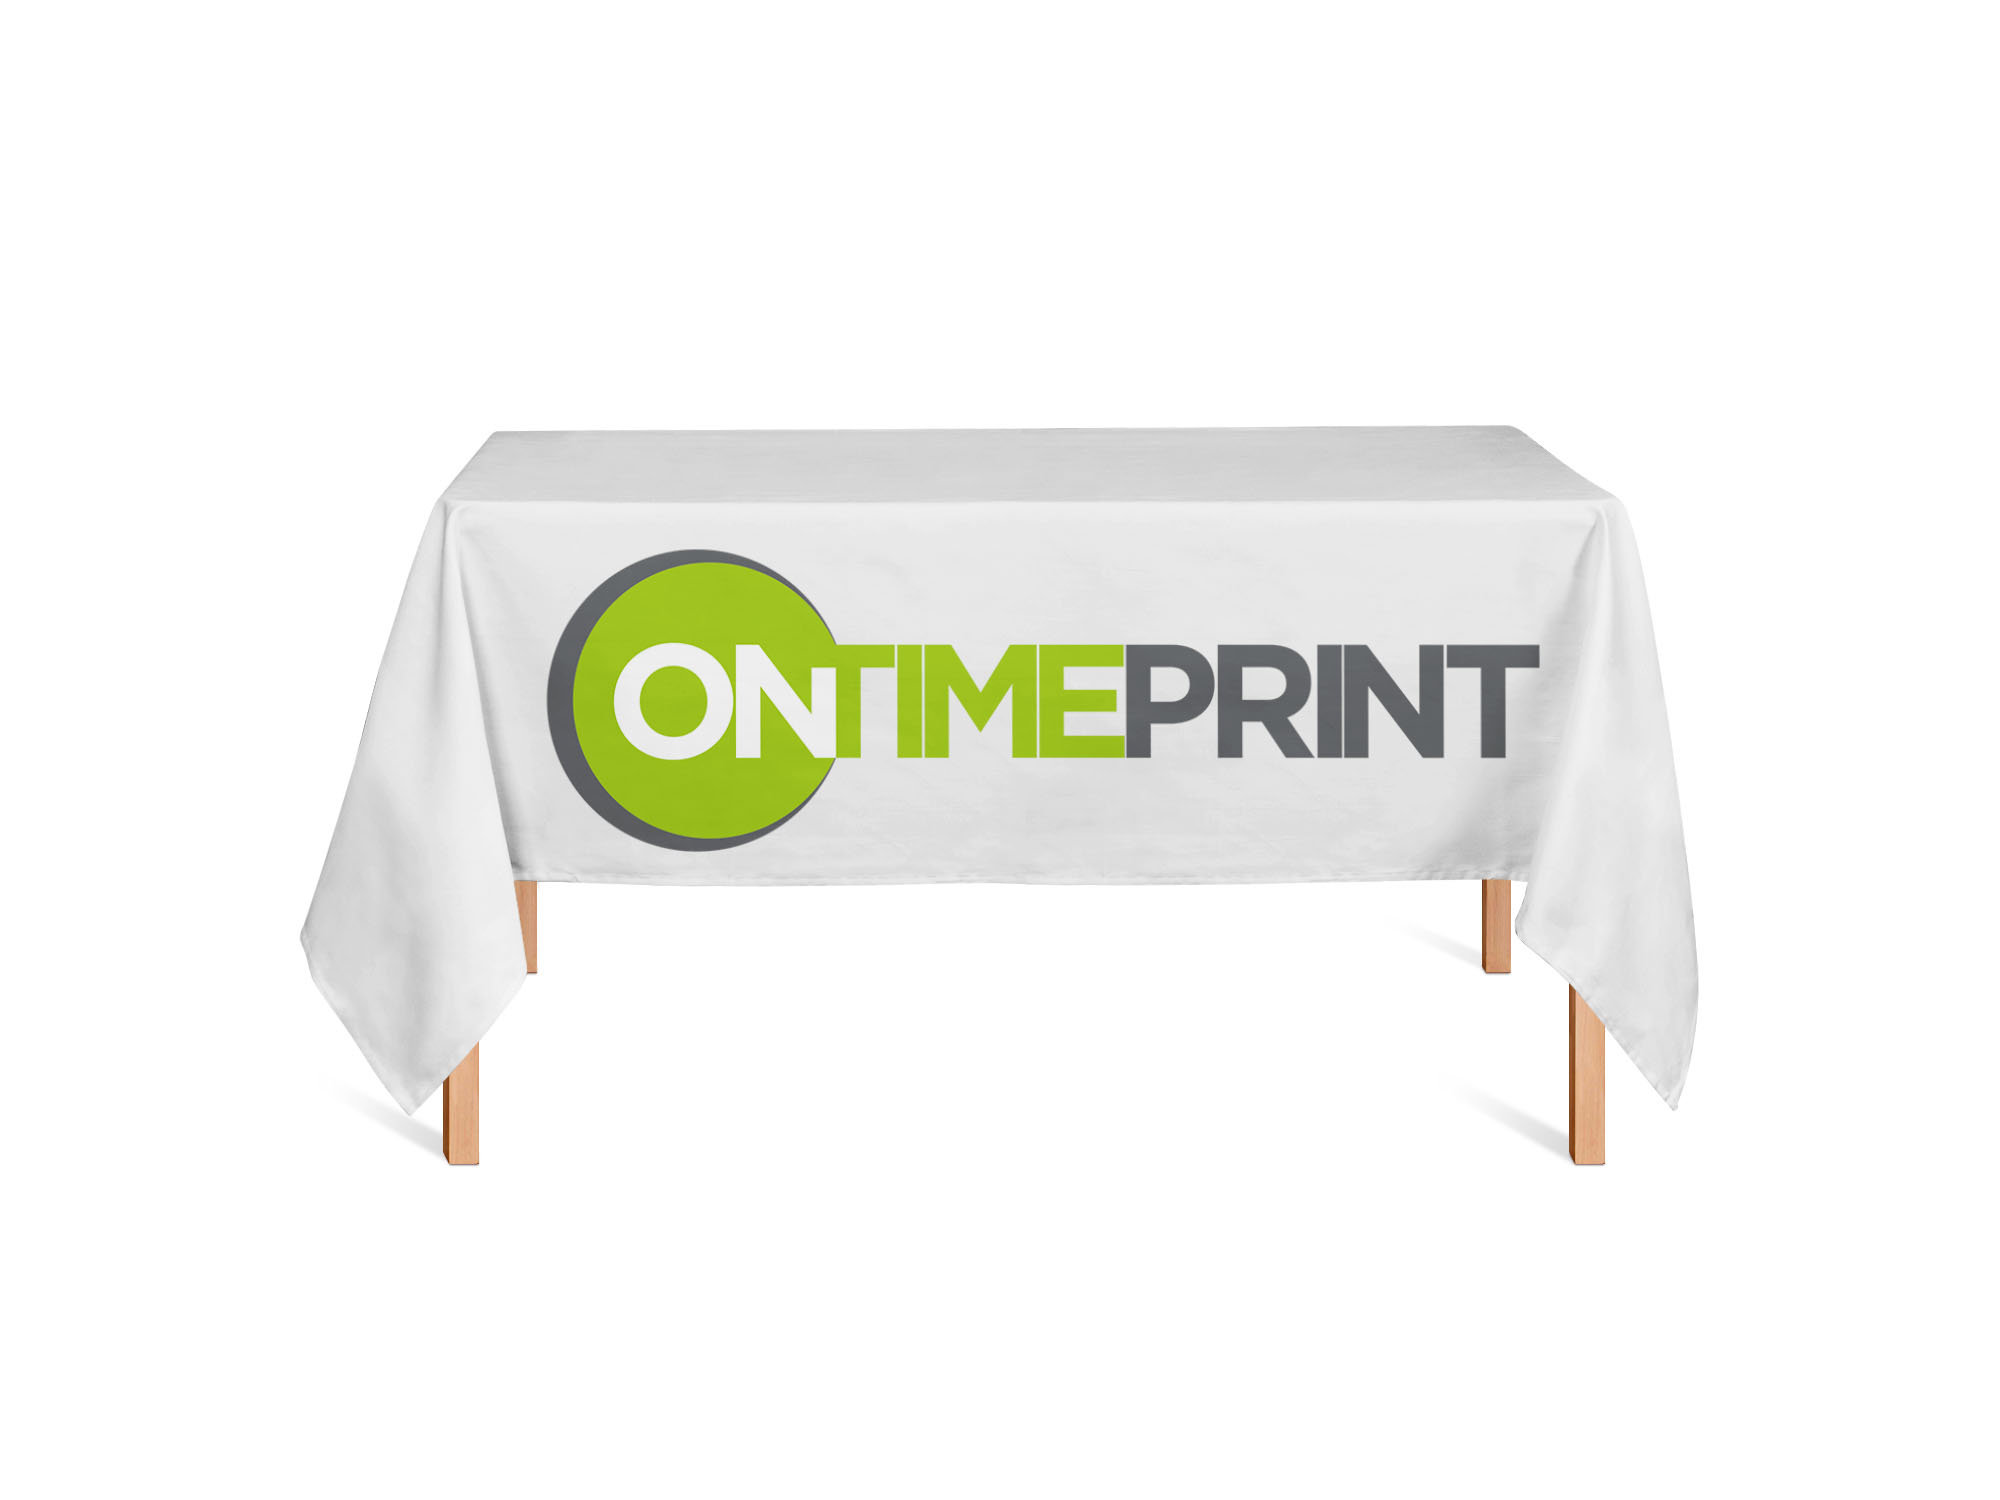 Personalized Tablecloth  Printing UK, Next Day Delivery - www.ontimeprint.co.uk